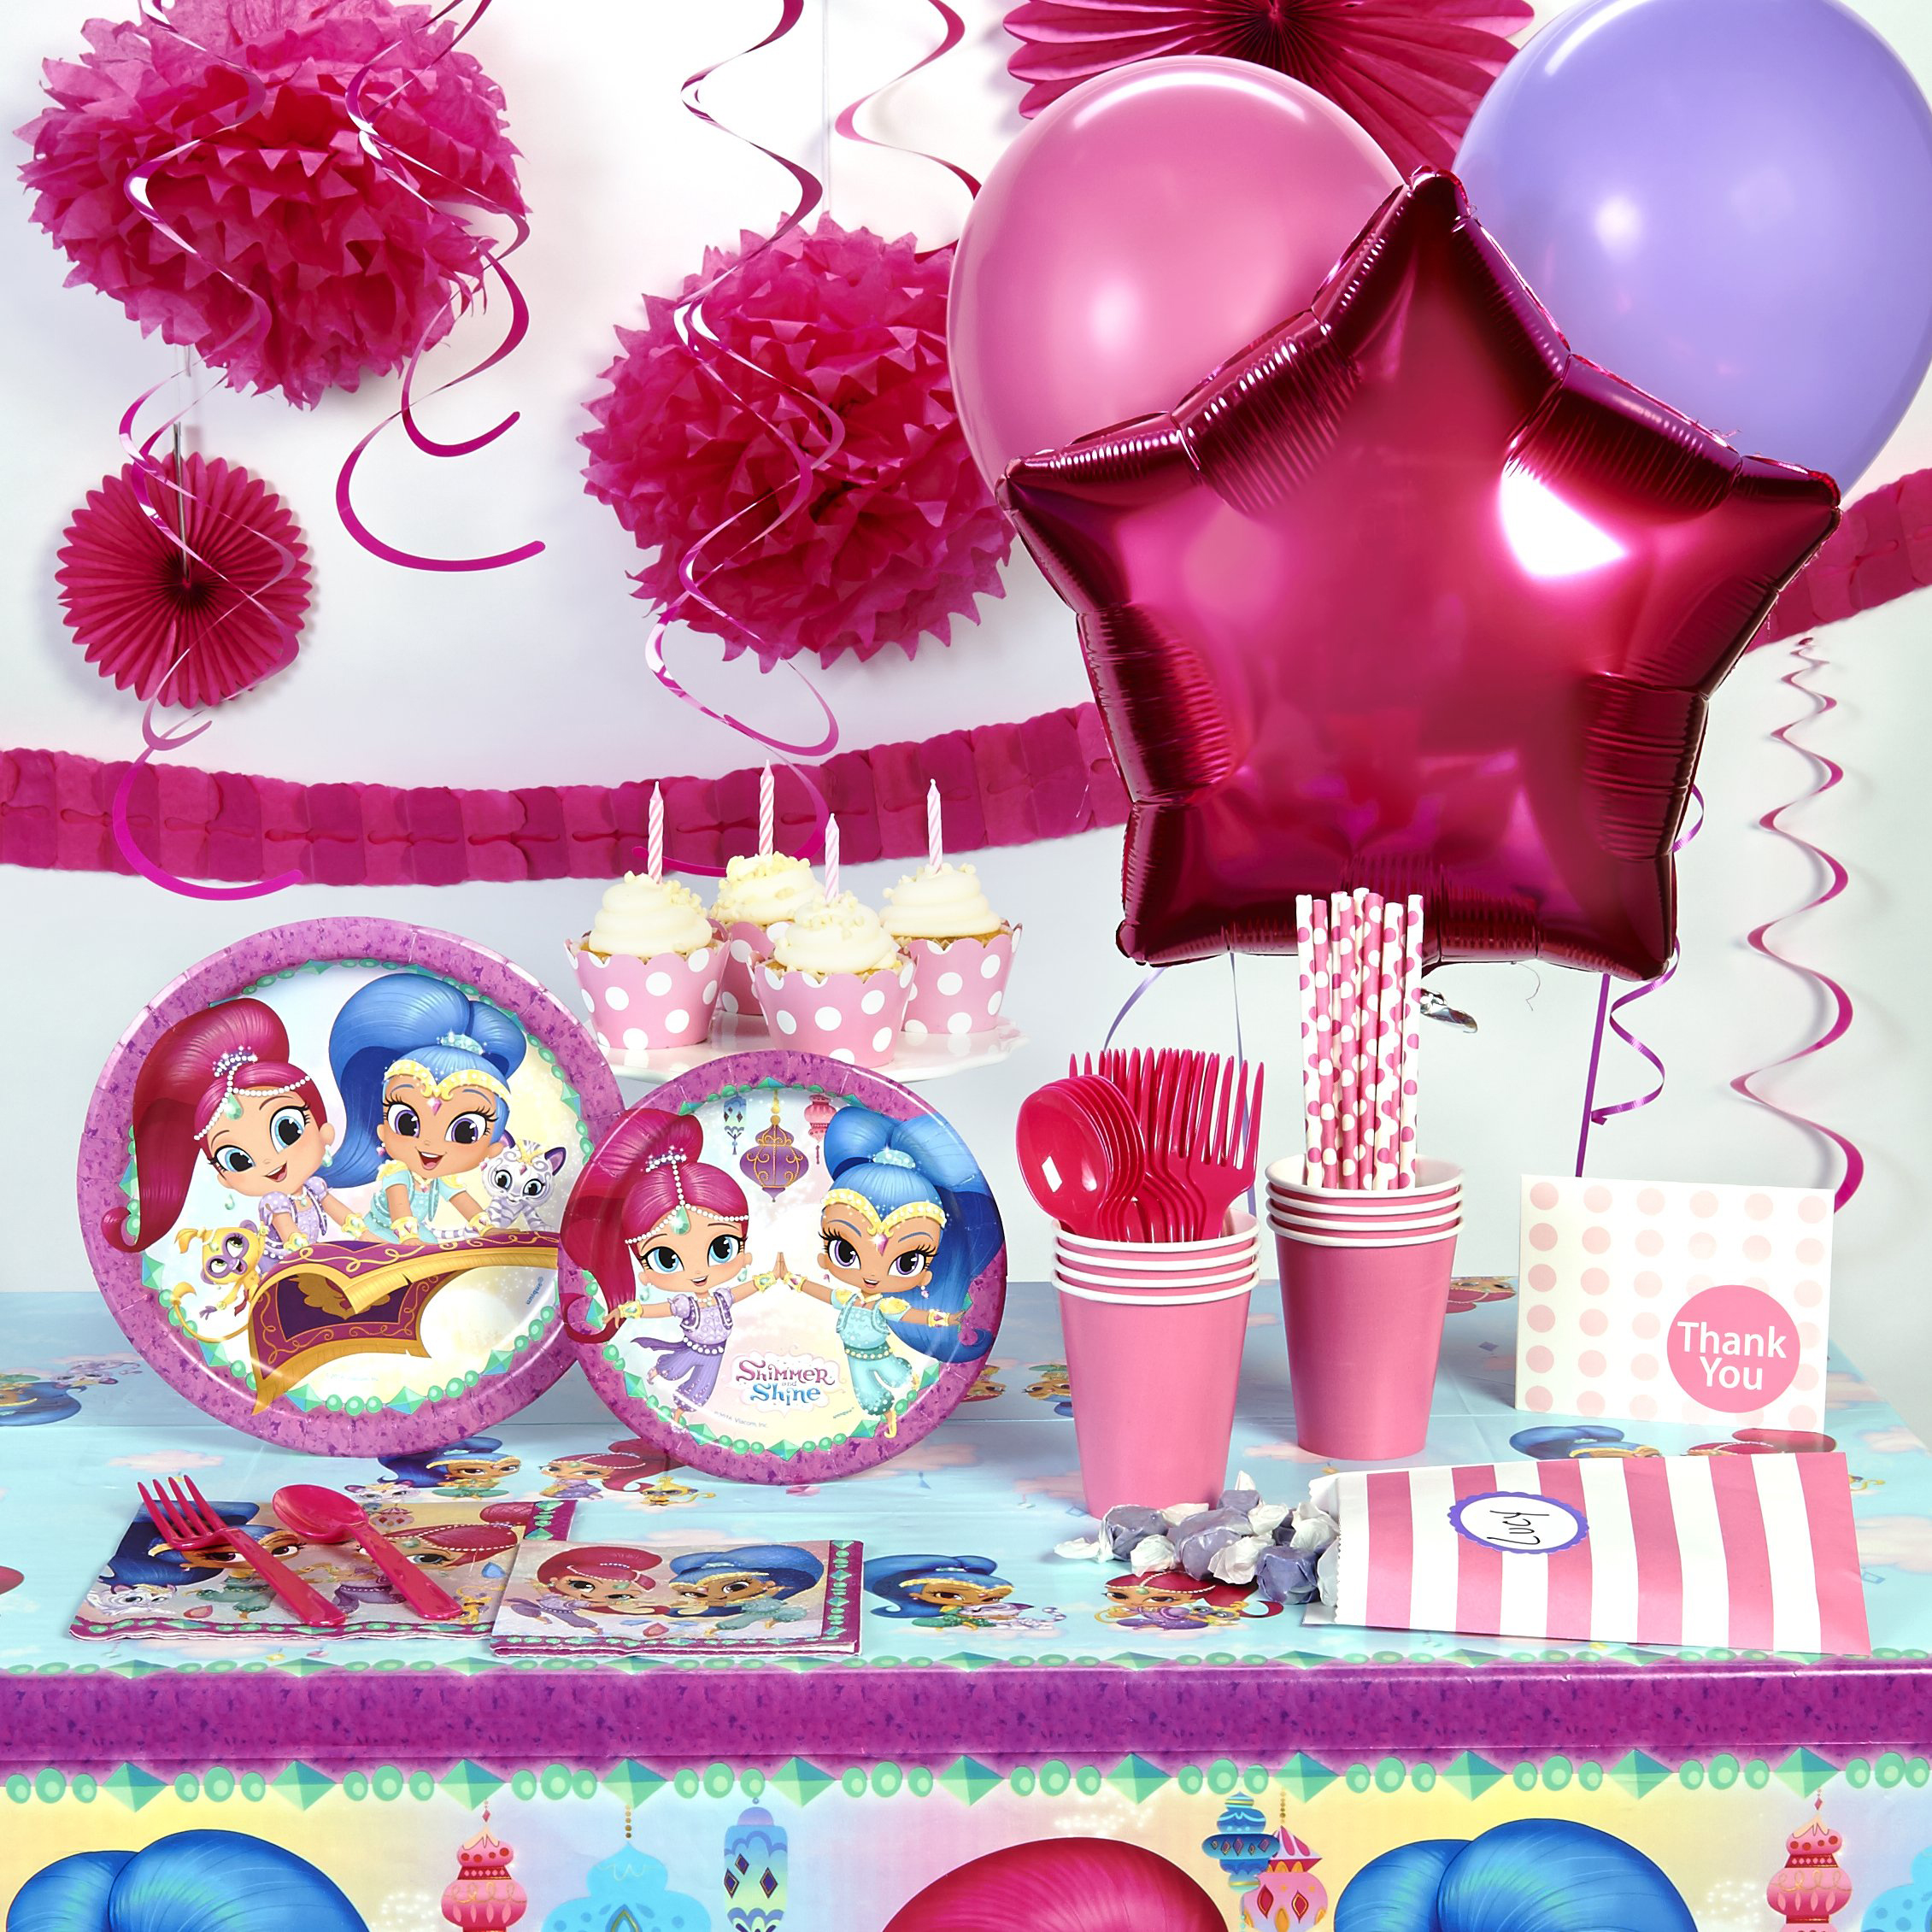 Shimmer and Shine Theme - Walmart.com